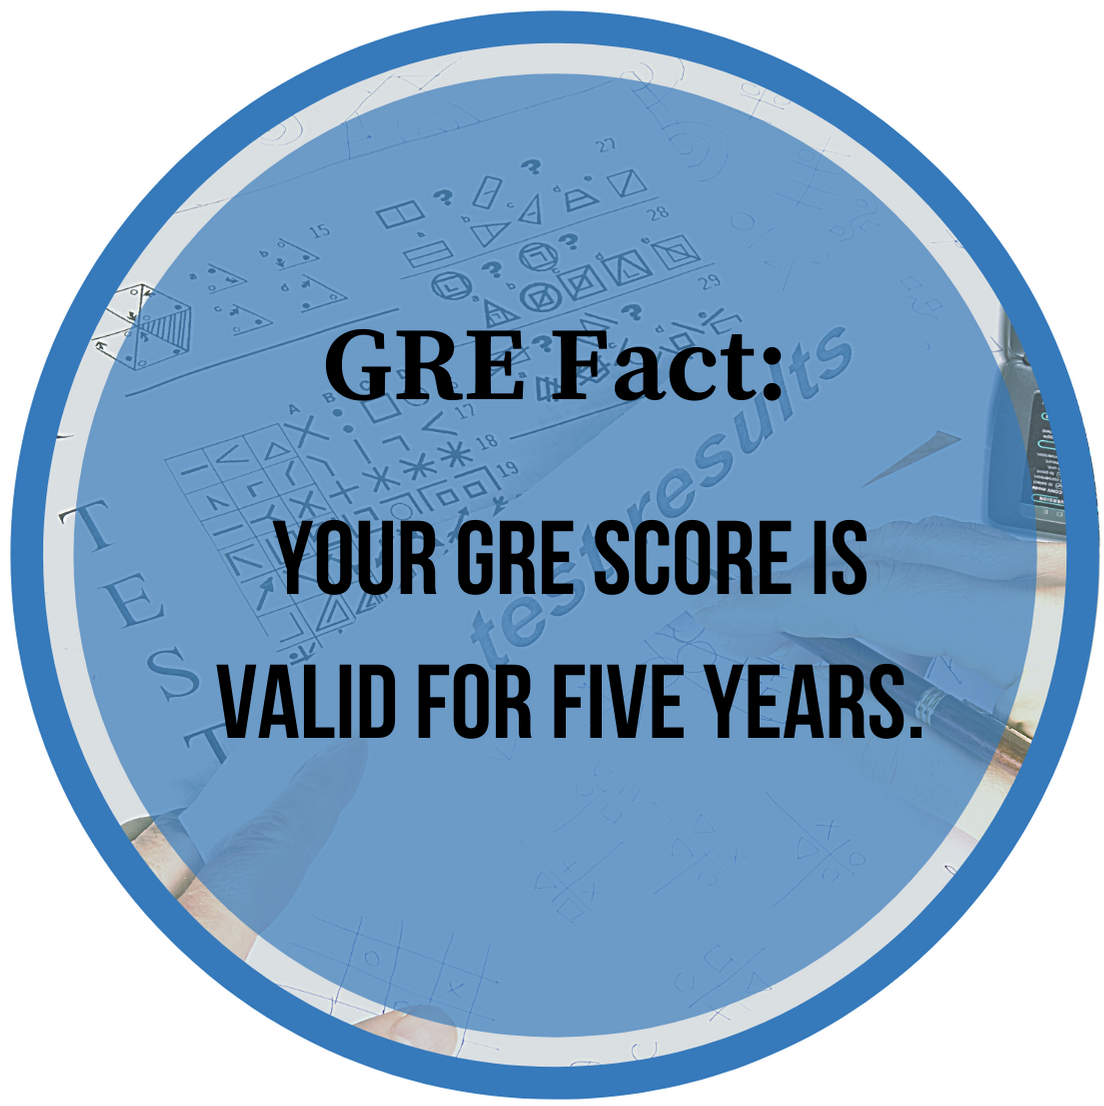 Non-GRE Colleges fact 1